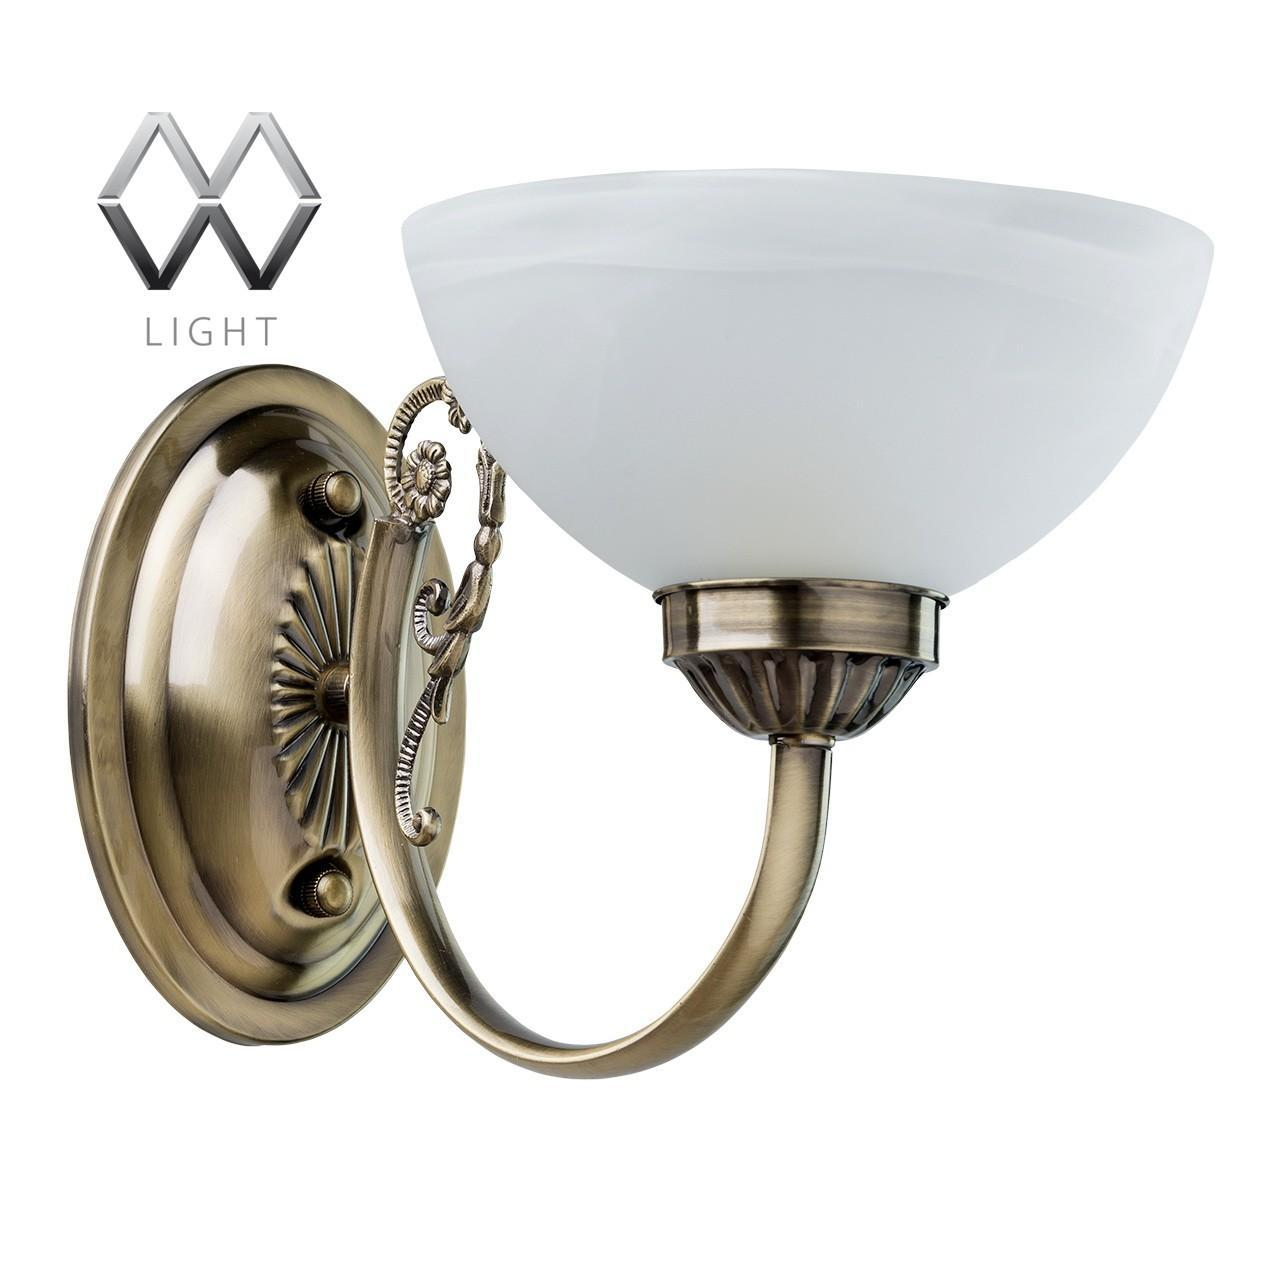 Бра MW-Light Олимп 318024201 все цены